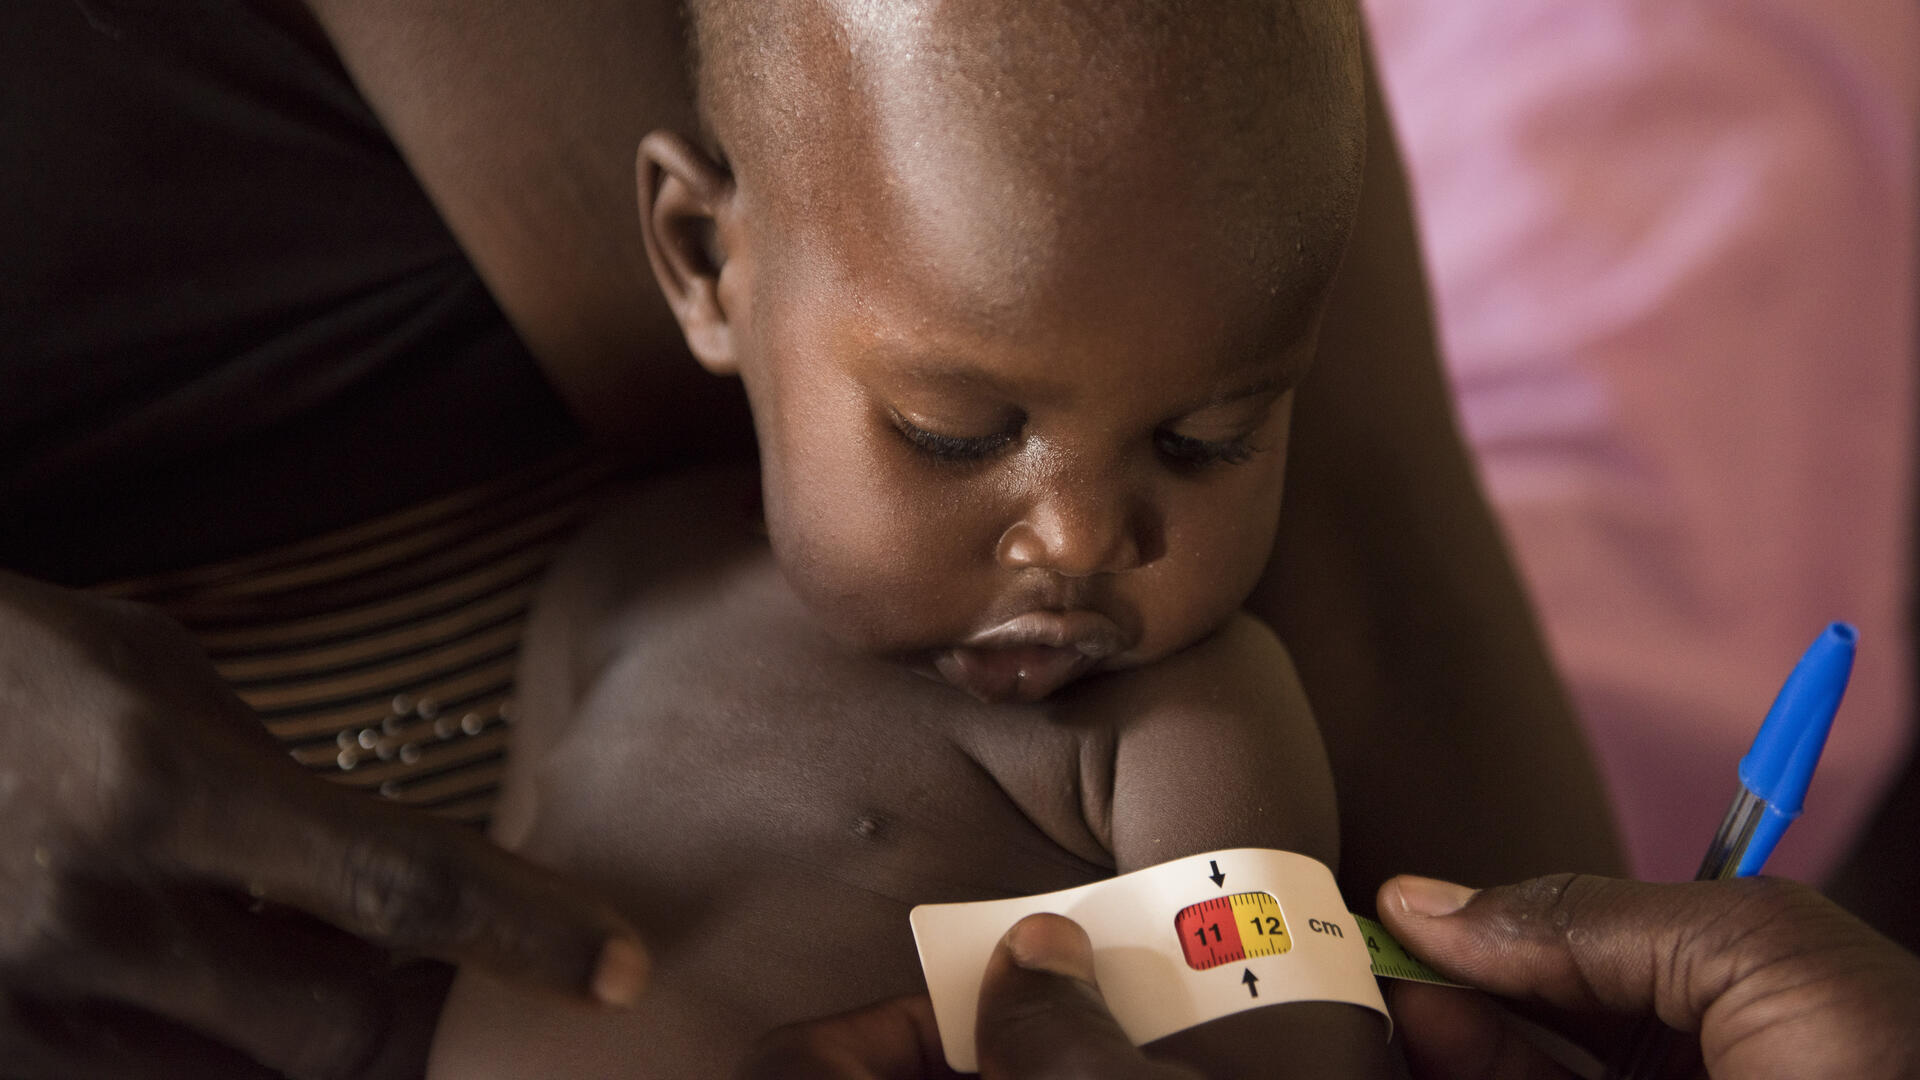 A MUAC tape around a South Sudanese baby's upper arm shows that he is at risk of acute malnutrition